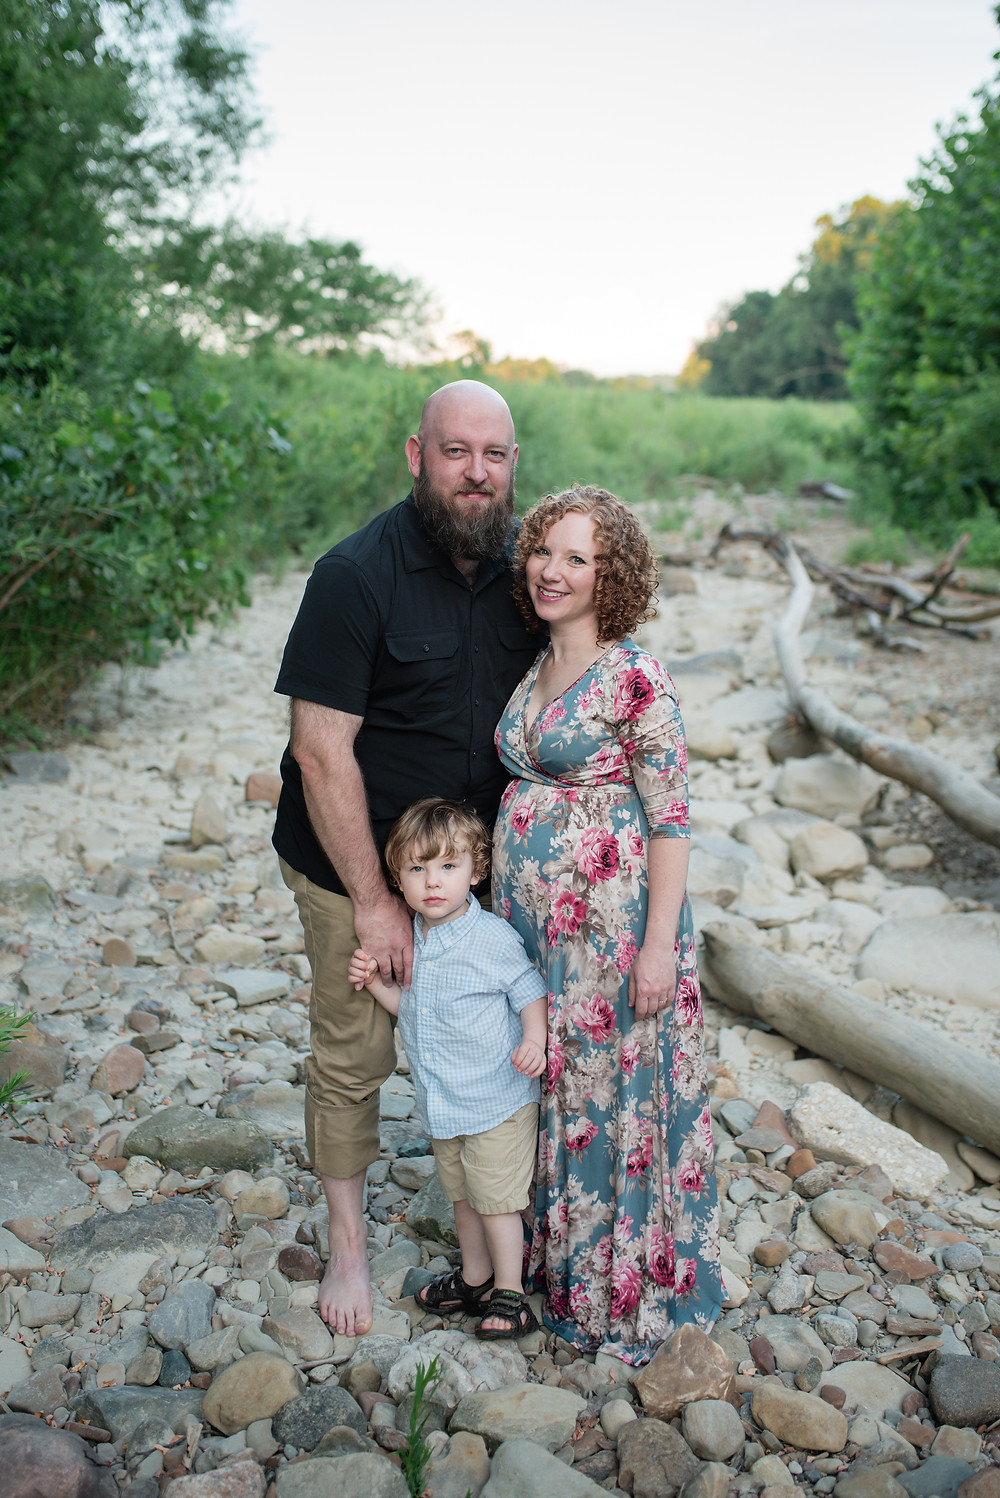 Maternity session at Everett Rd covered bridge - Victoria Griest Photography